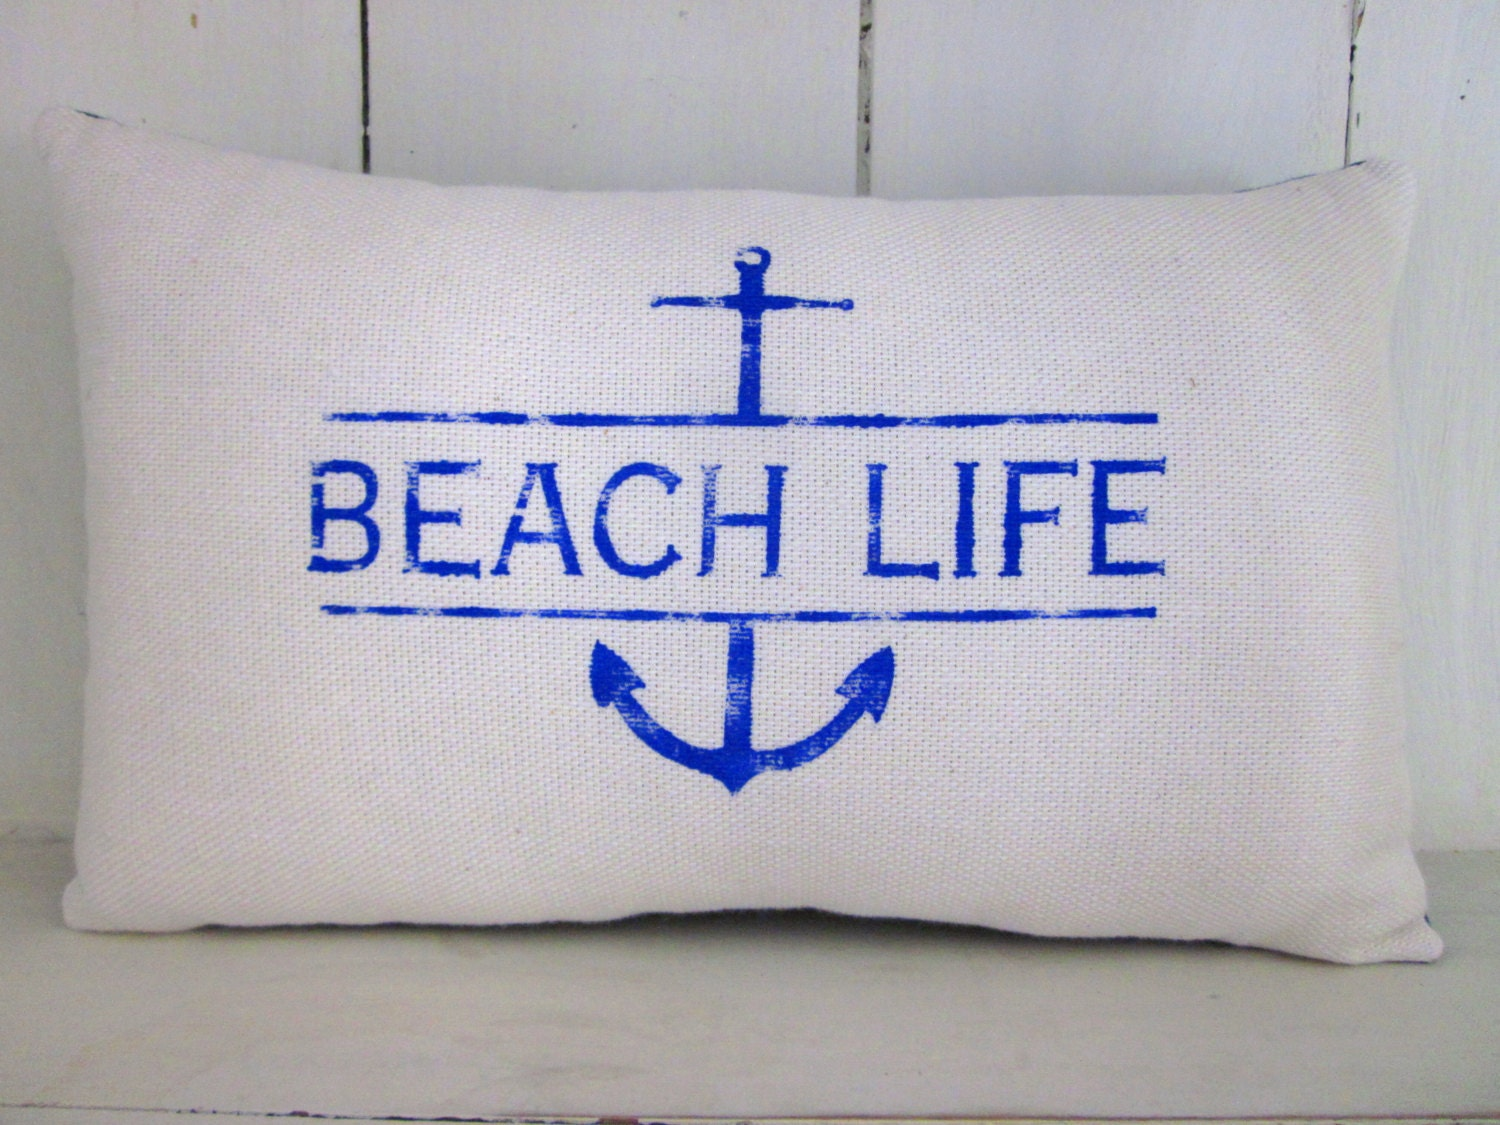 50 clearance sale decorative pillow beach decor nautical. Black Bedroom Furniture Sets. Home Design Ideas